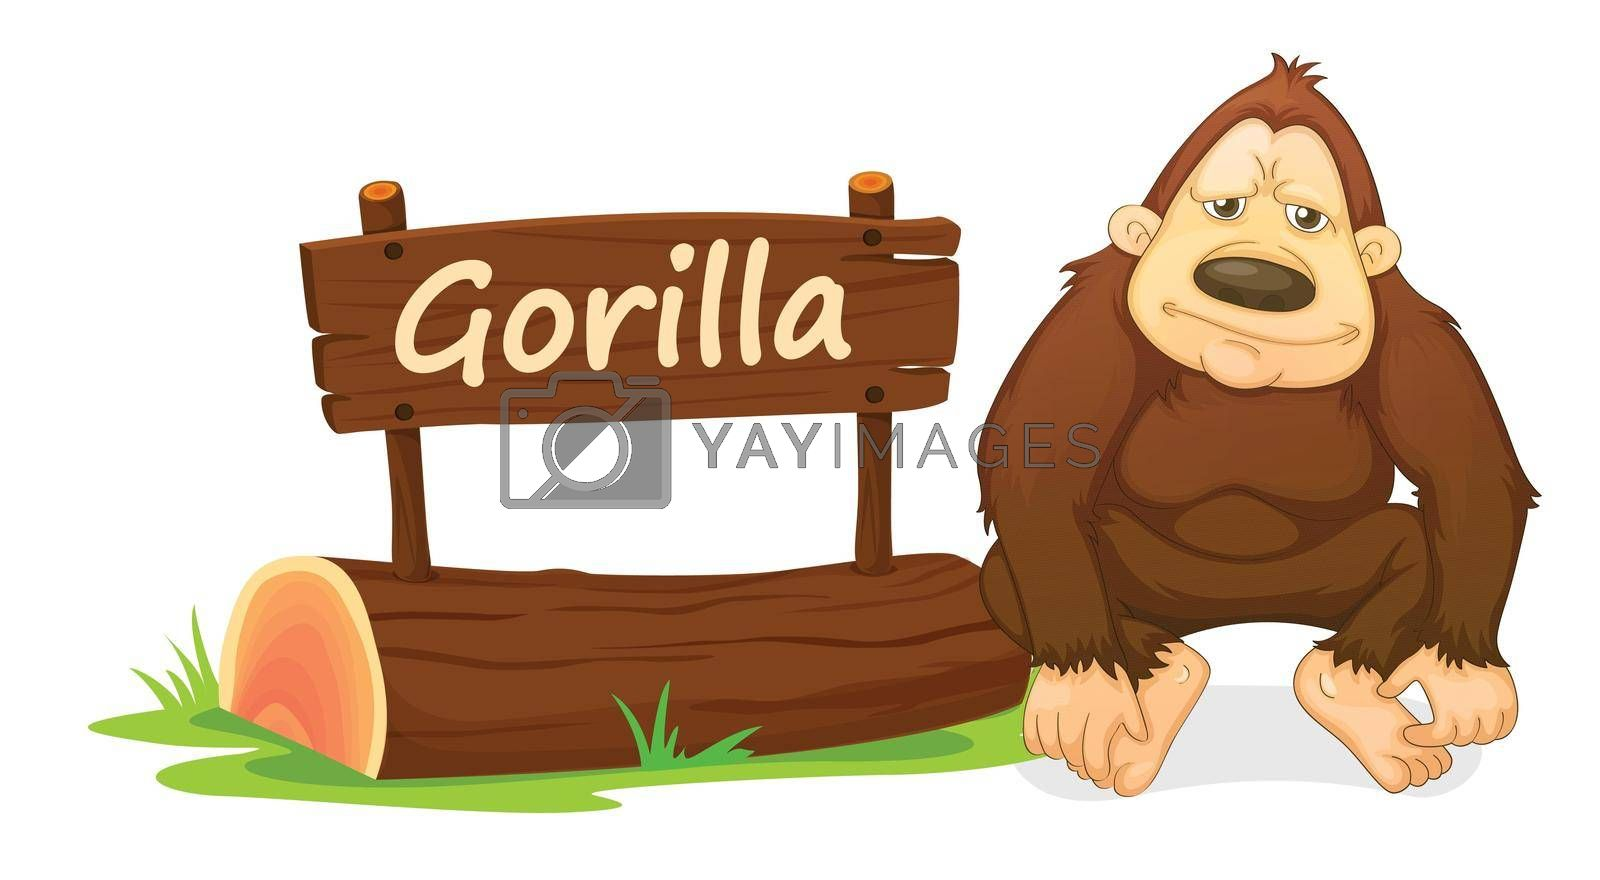 illustration of gorilla and name plate on a white